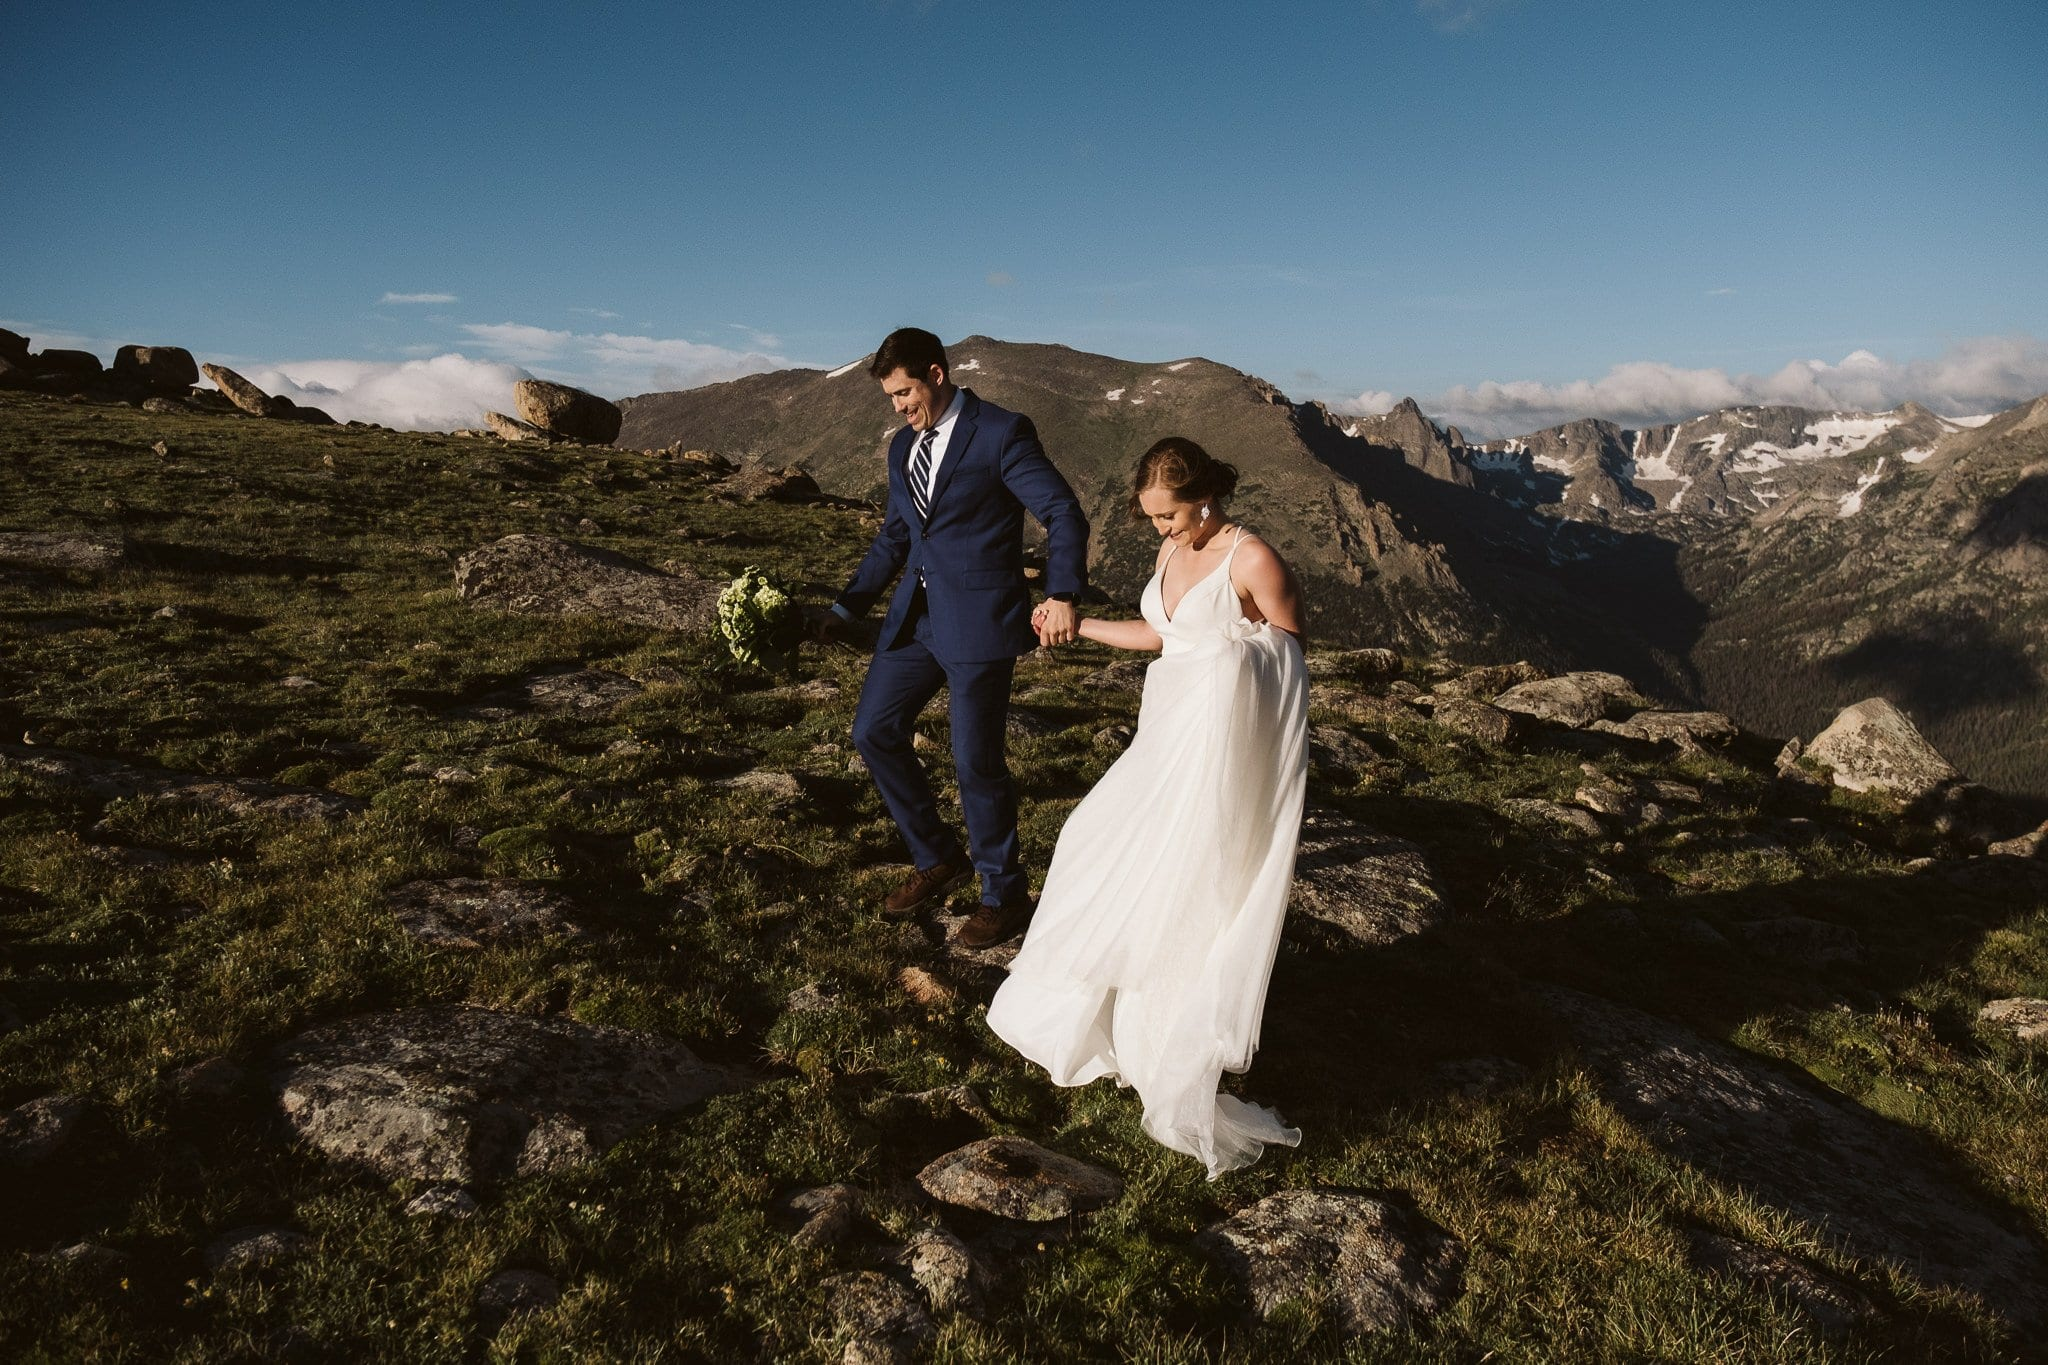 Adventure hiking elopement in the Rocky Mountains, Colorado elopement photographer, adventure wedding